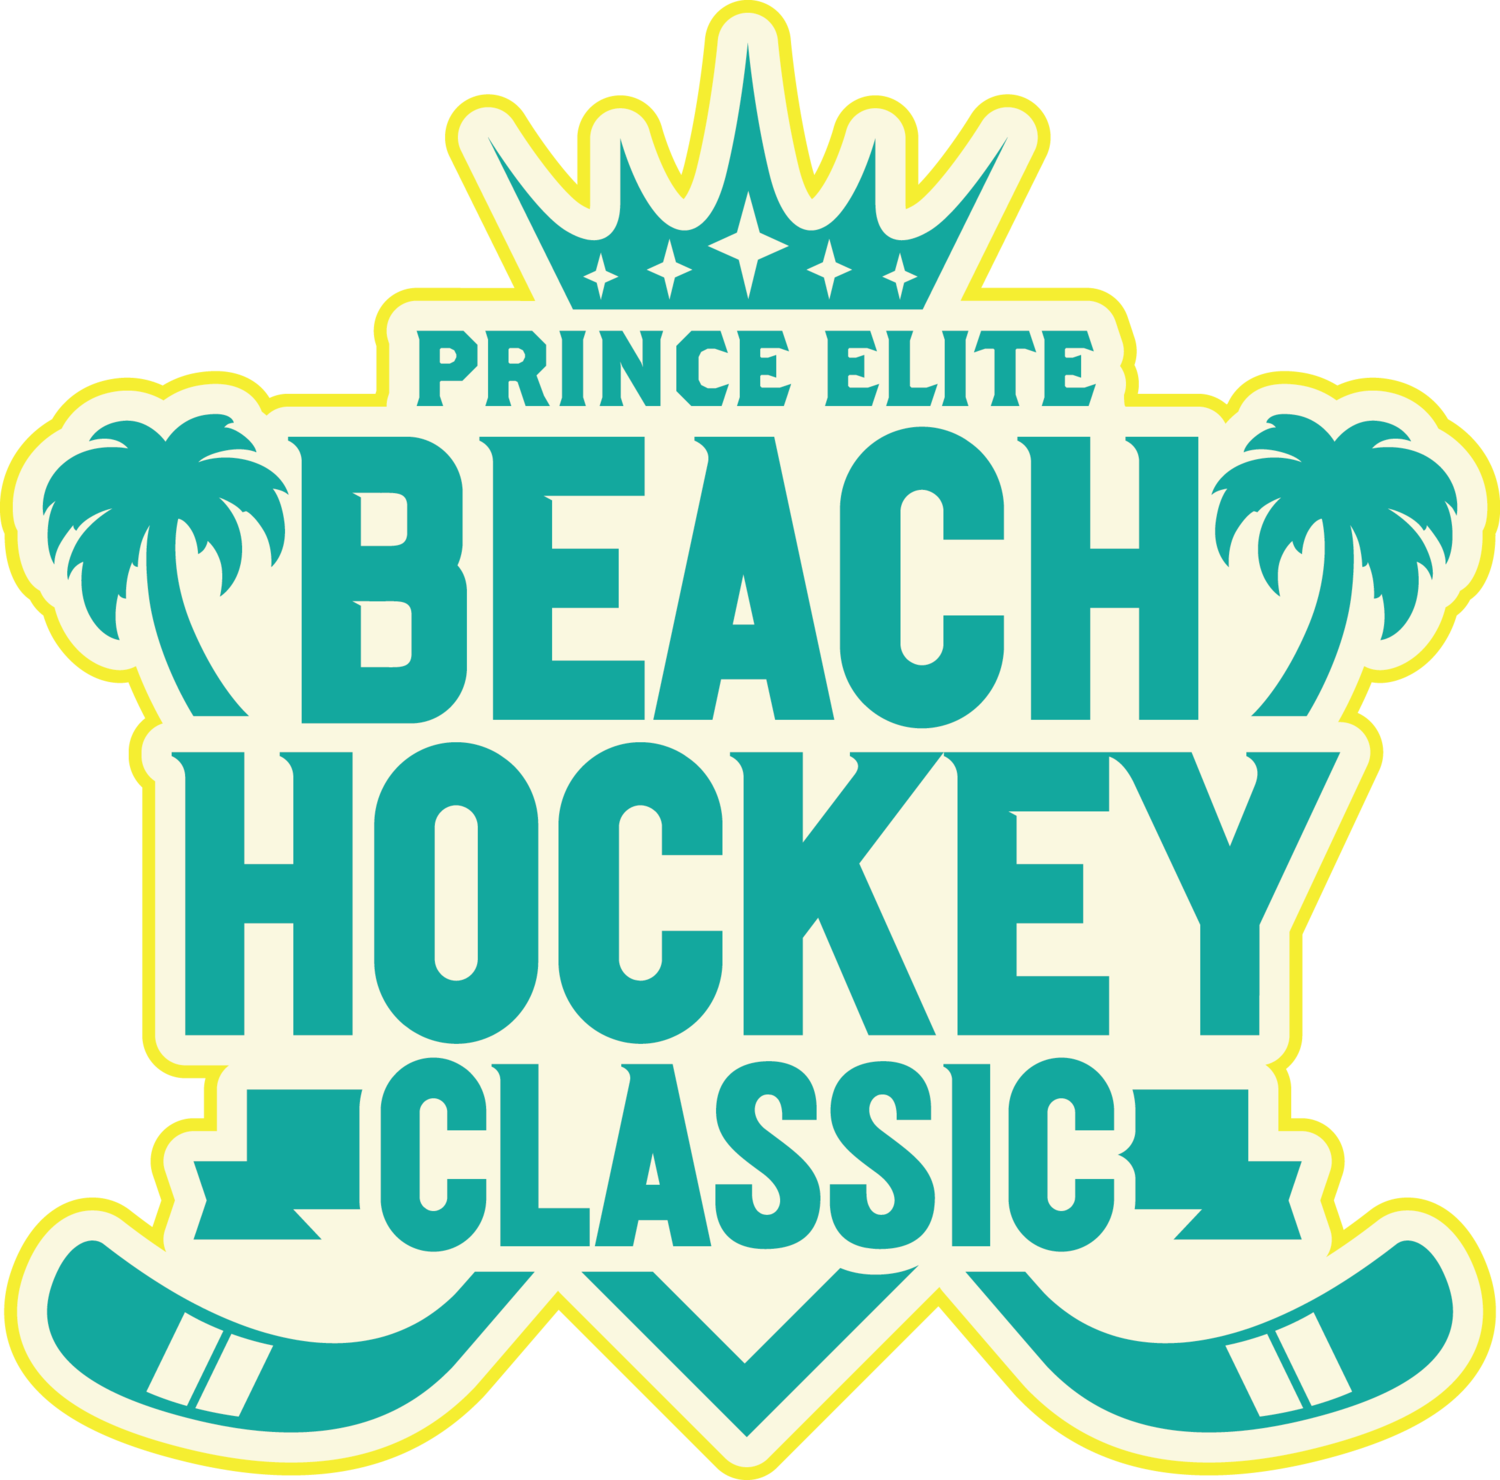 Beach Hockey Classic